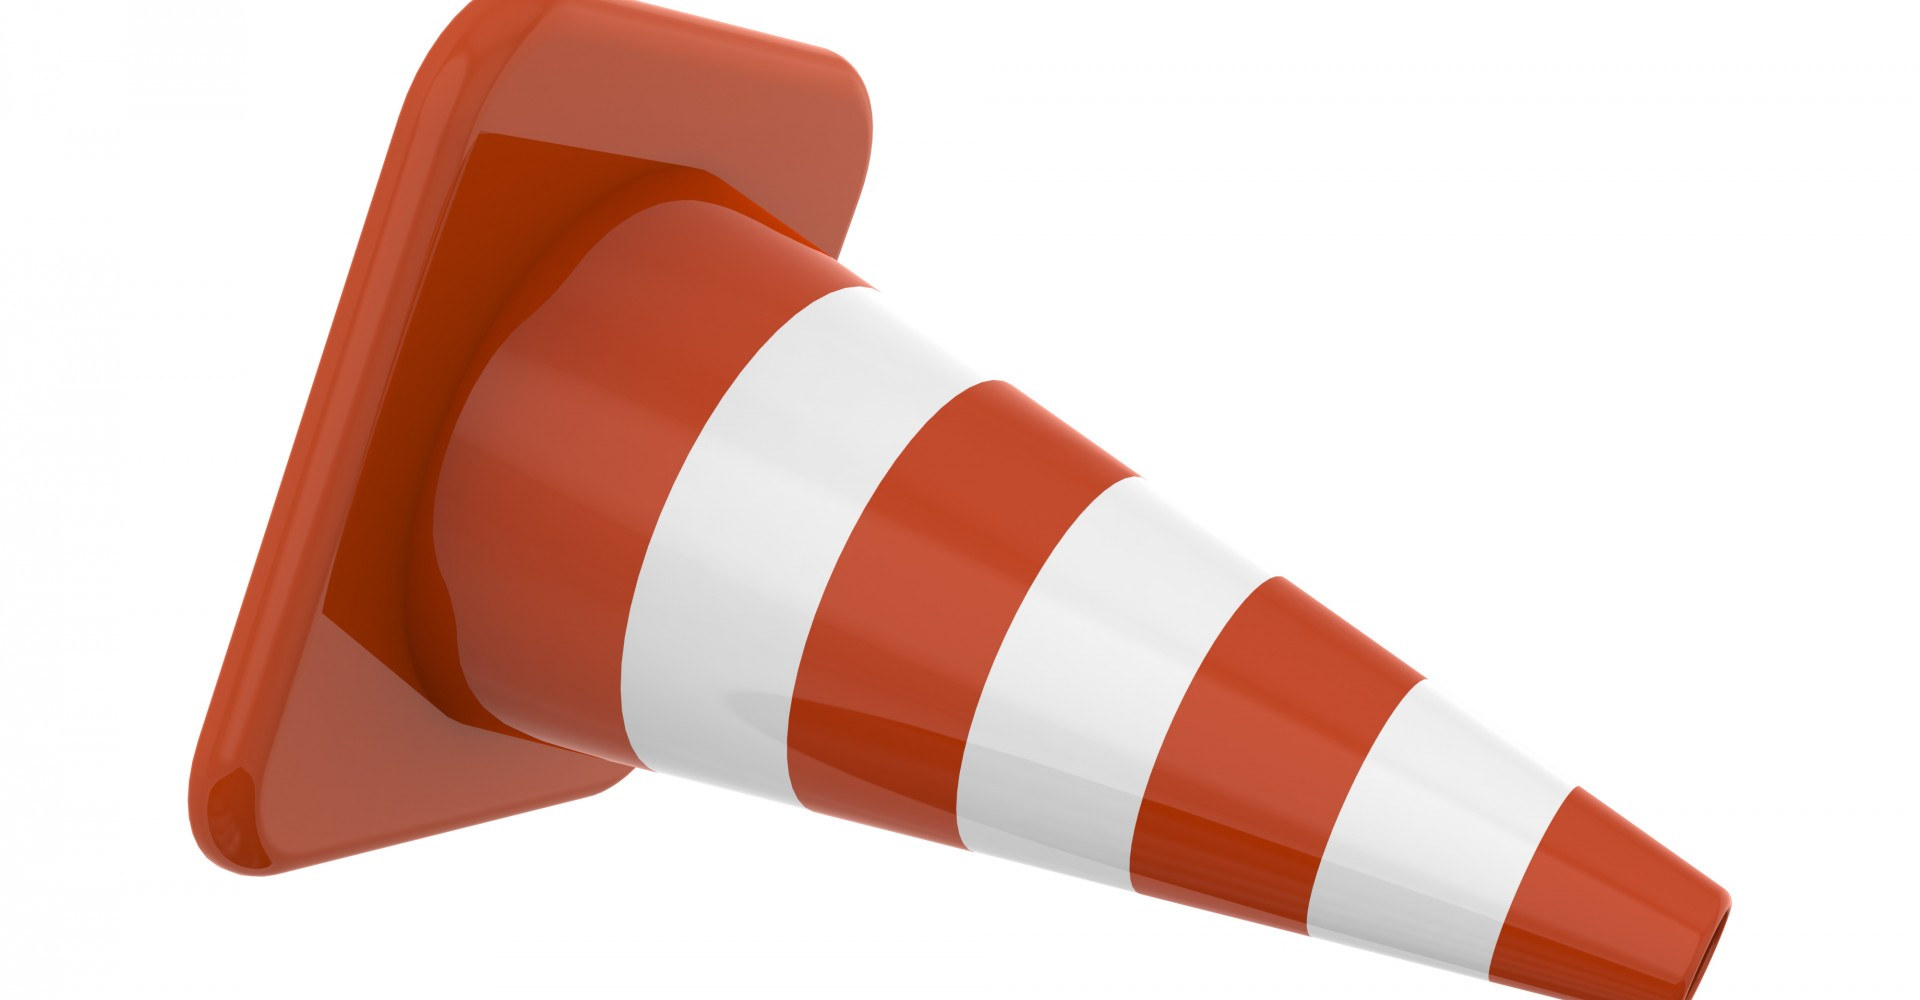 Stag Party Dresses As Traffic Cones, Disrupts Traffic